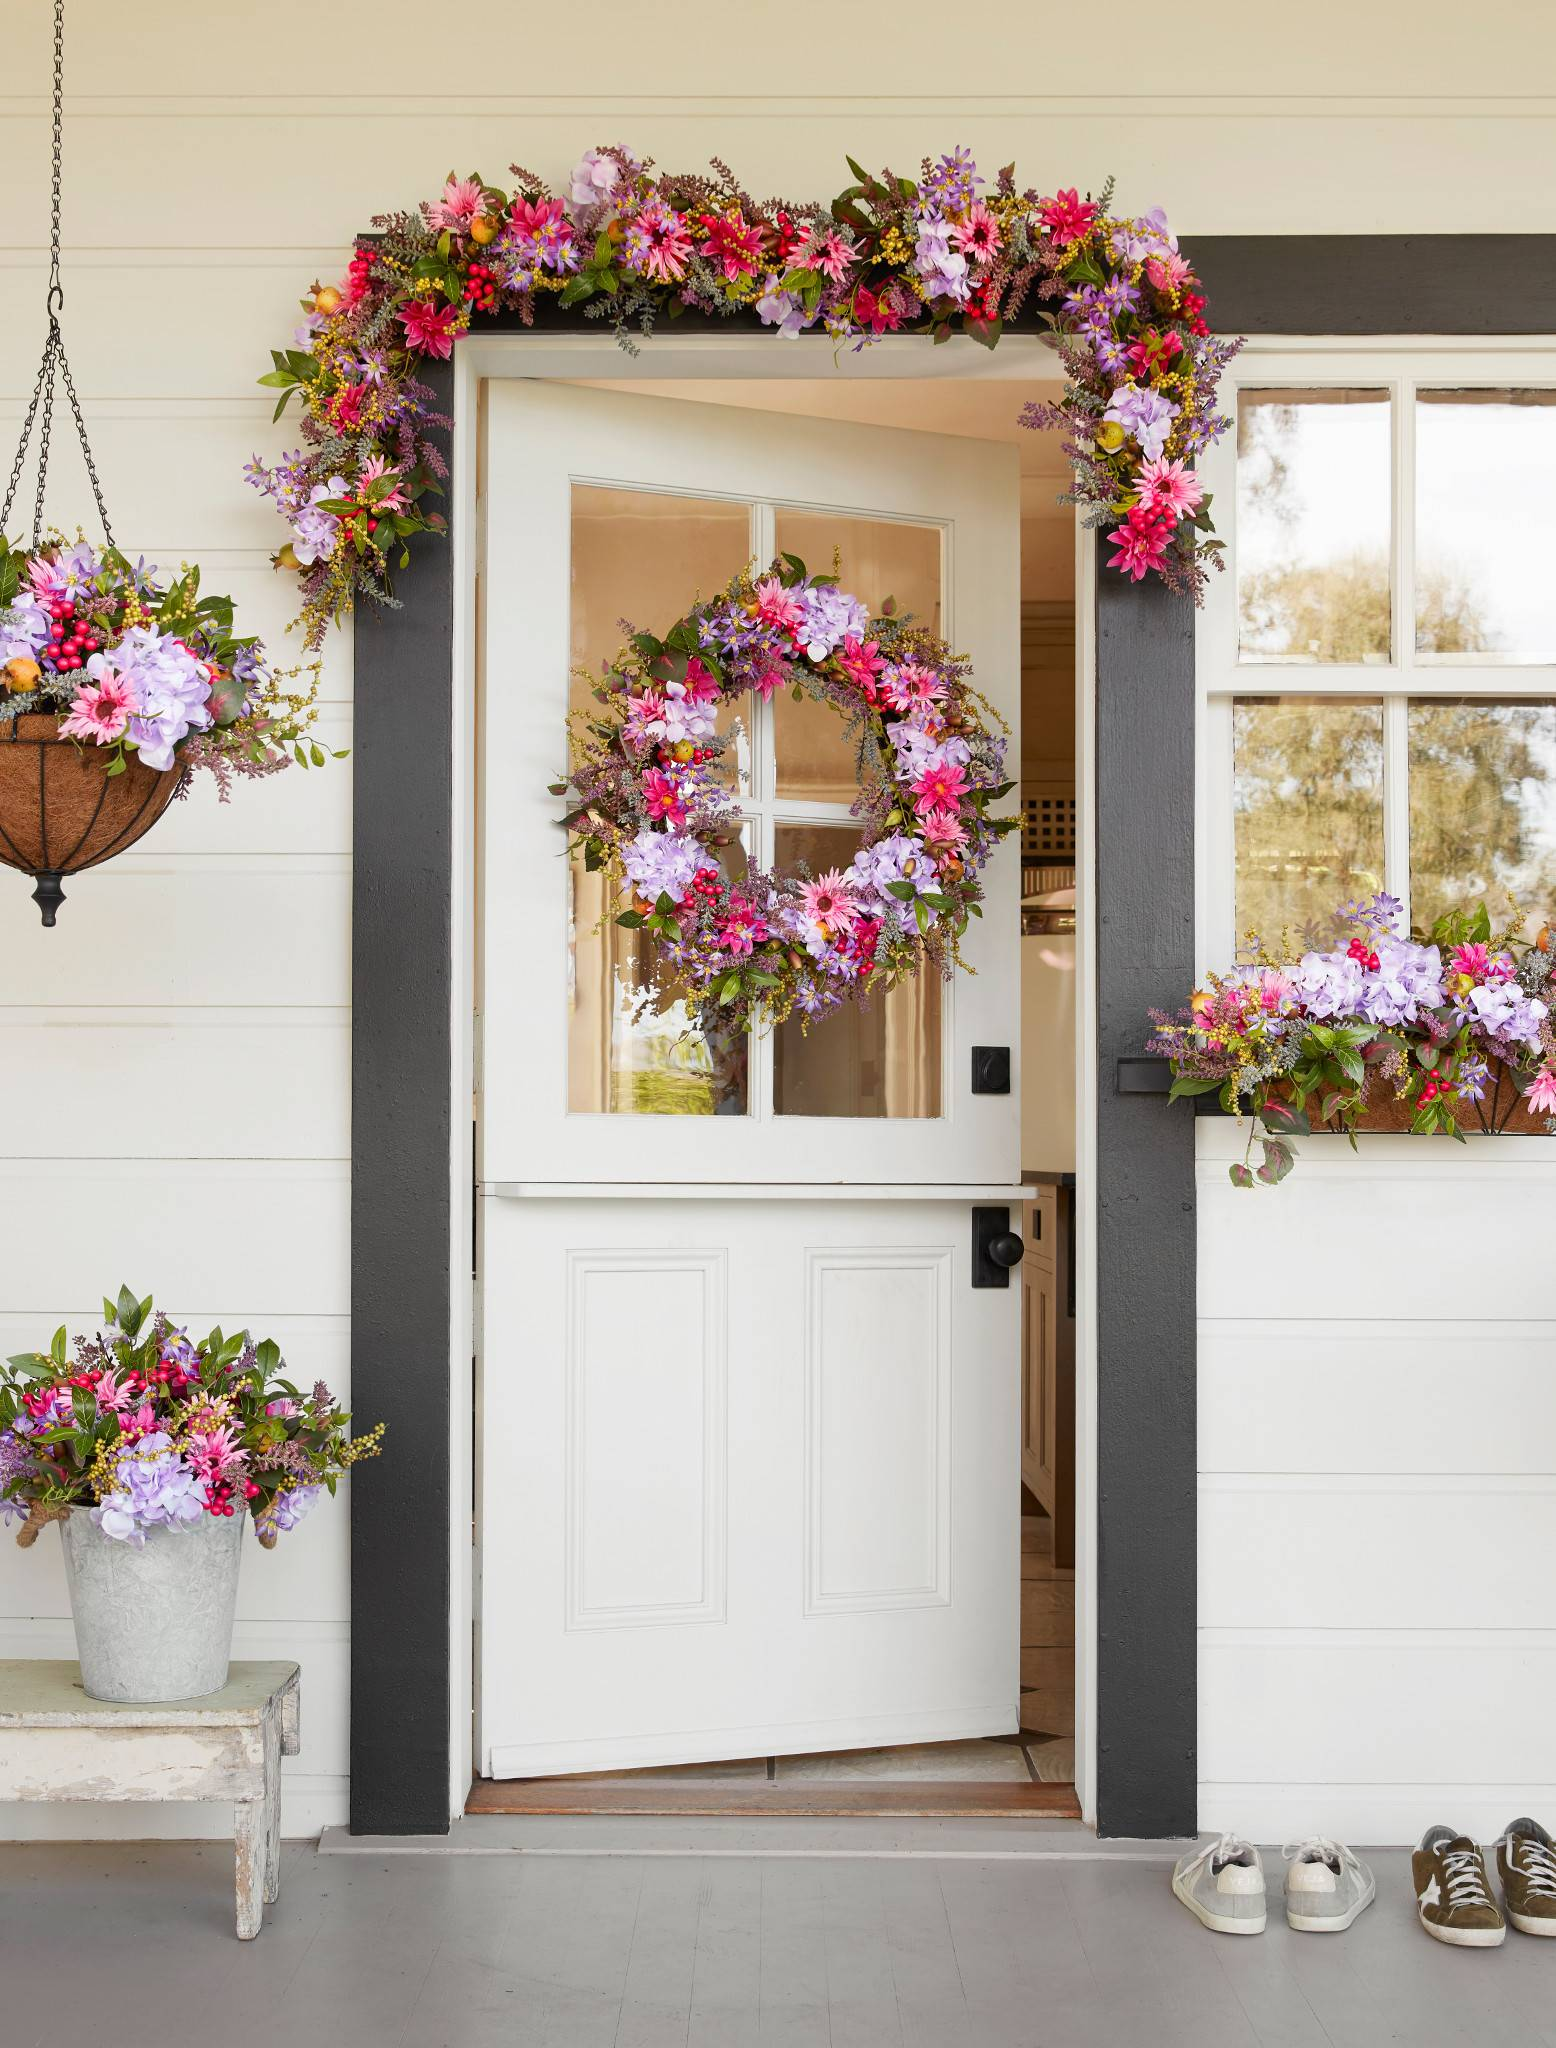 Balsam Hill Outdoor-safe Vibrant Summer Bloom floral wreath, garland, hanging basket, potted foliage, and window box on front door